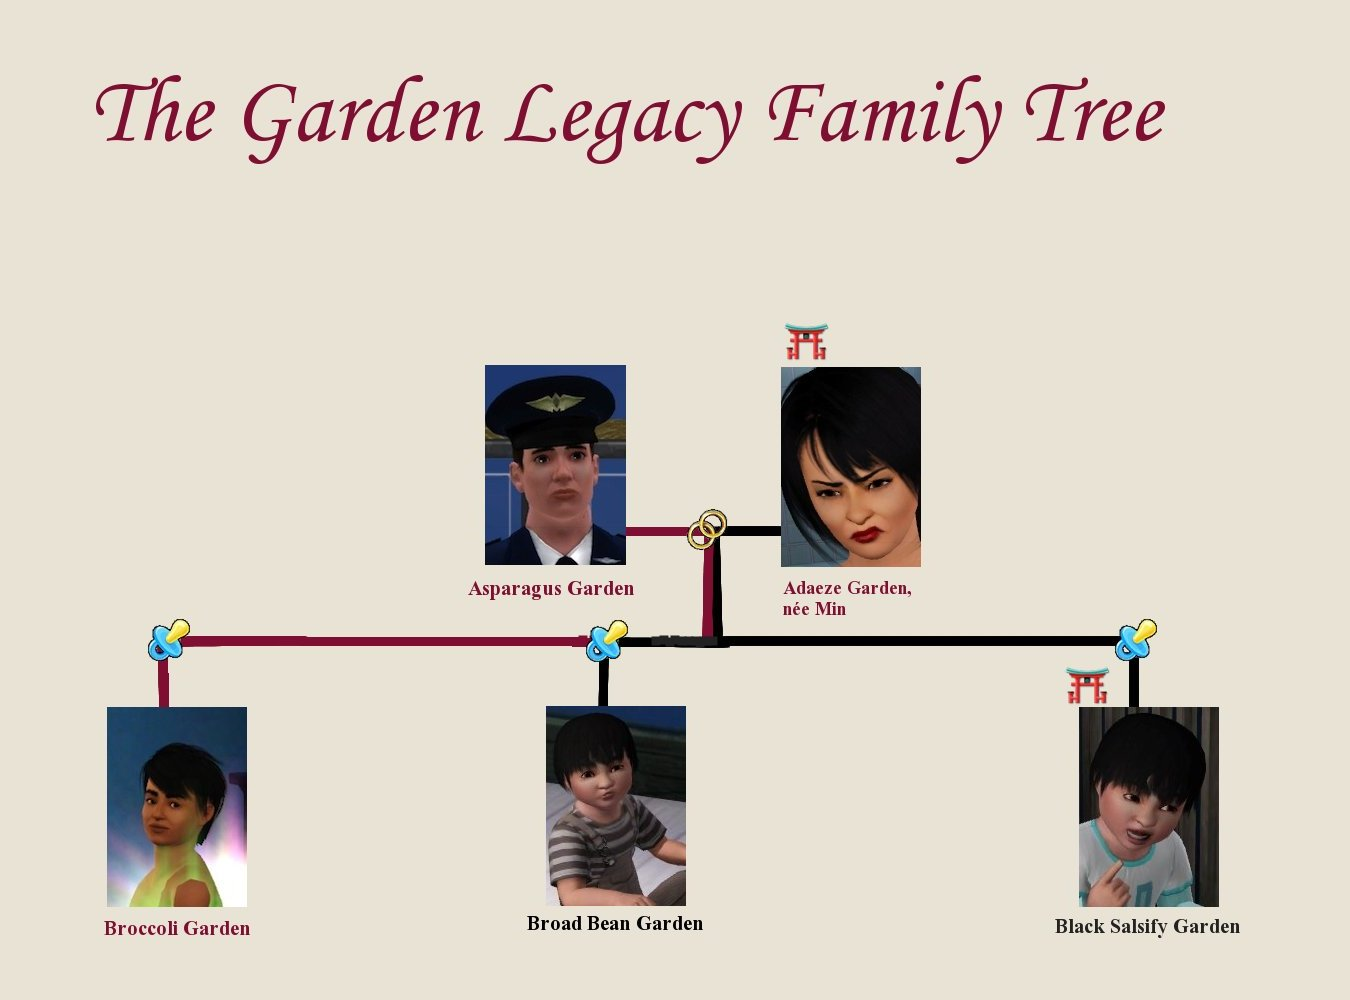 The Garden Family Tree